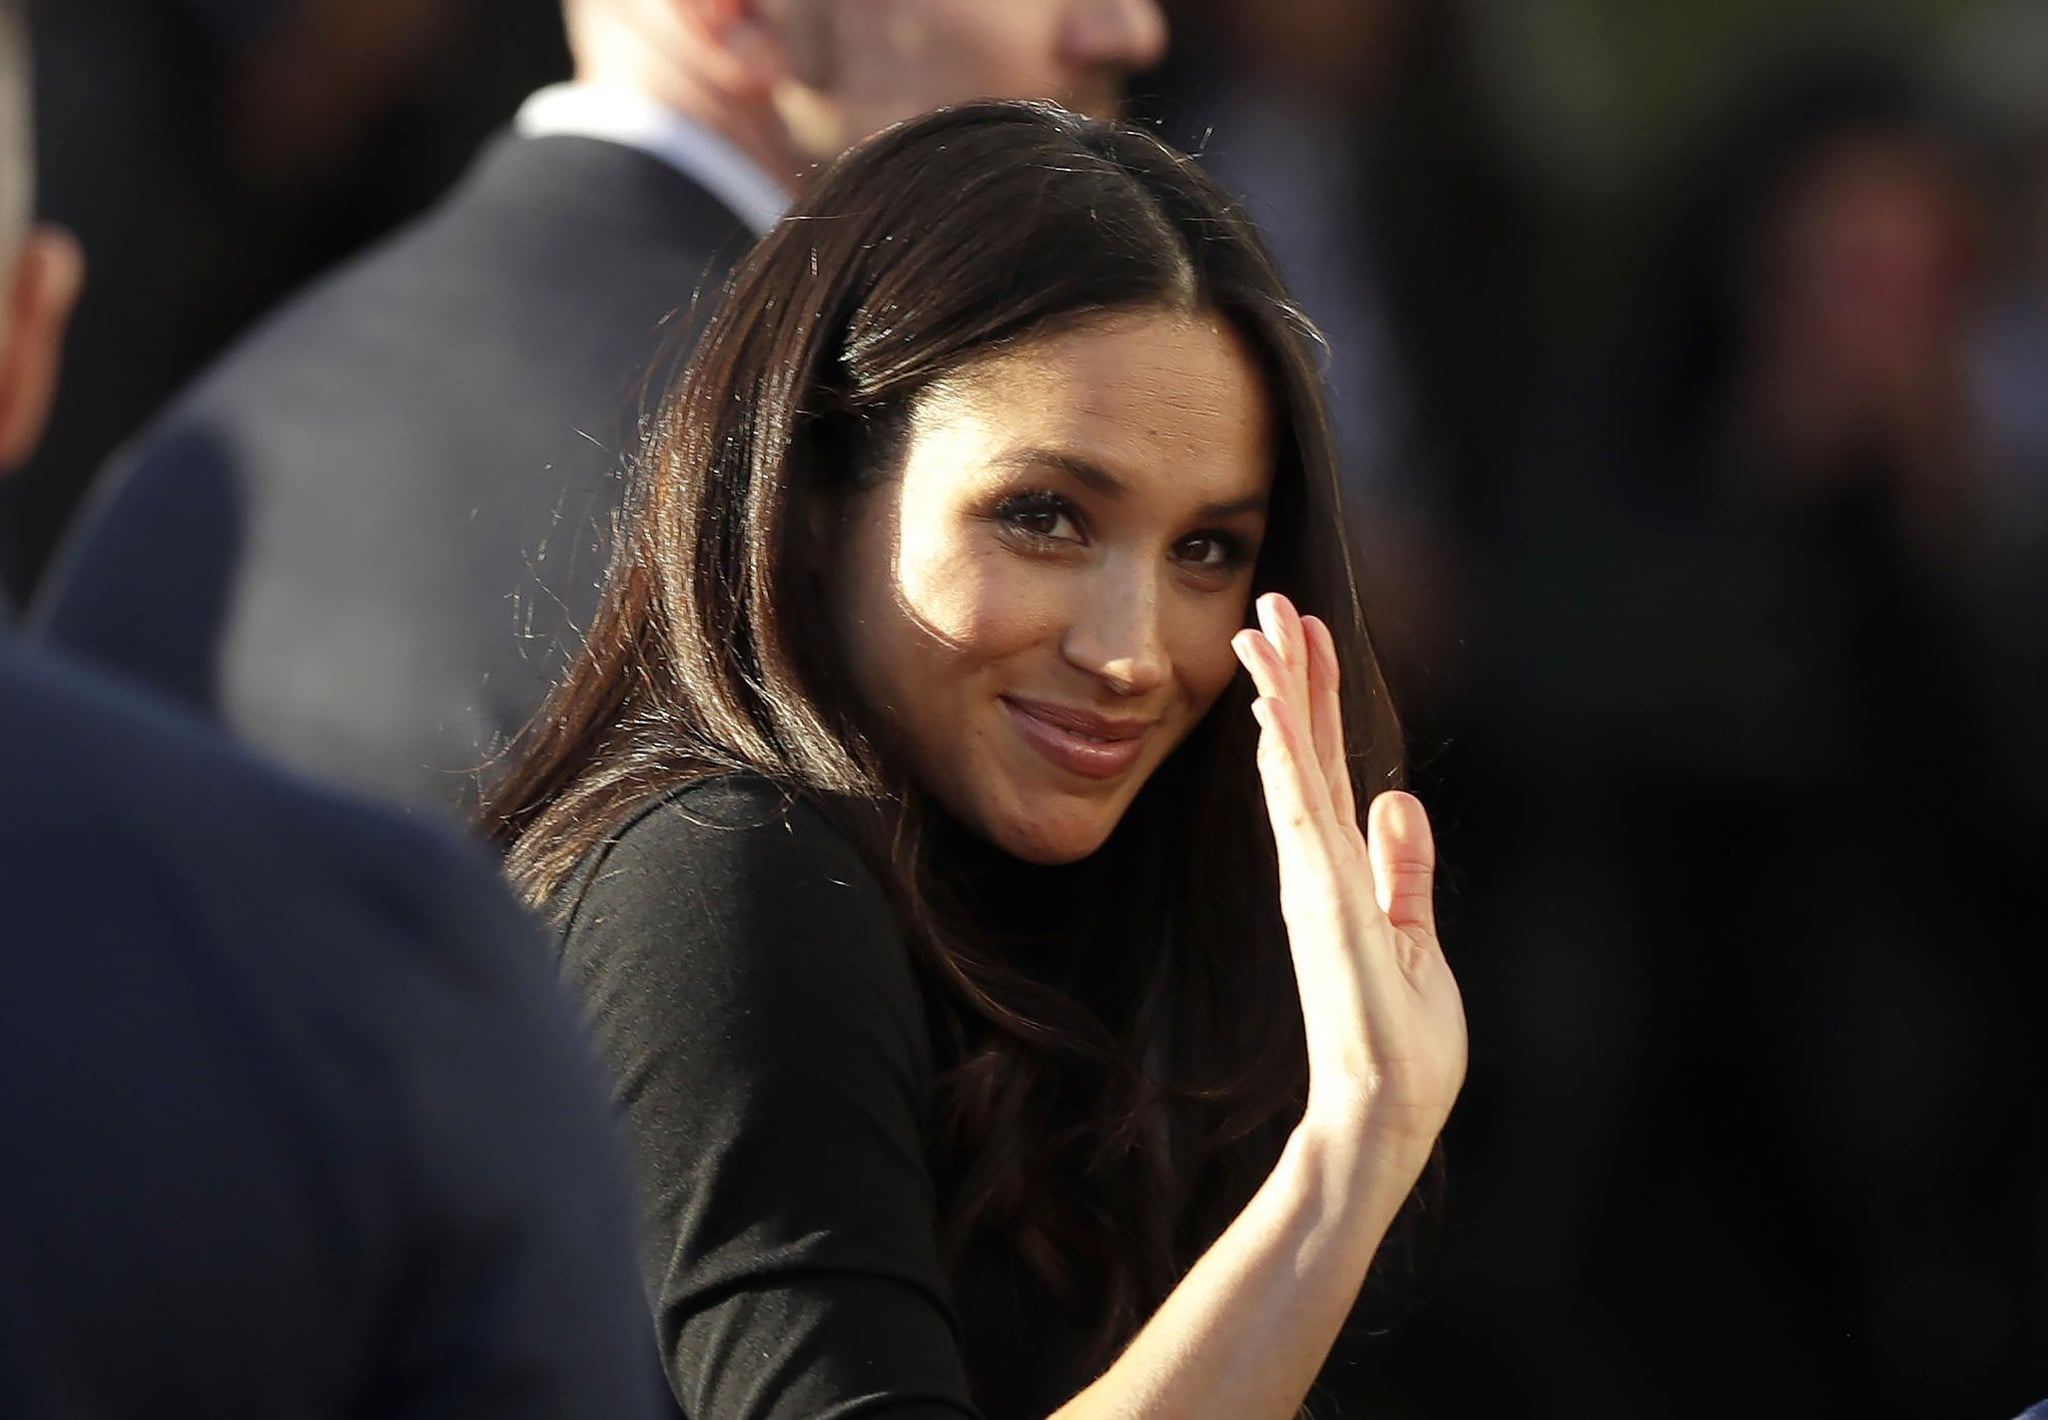 15+ Meghan Markle First Husband Wiki